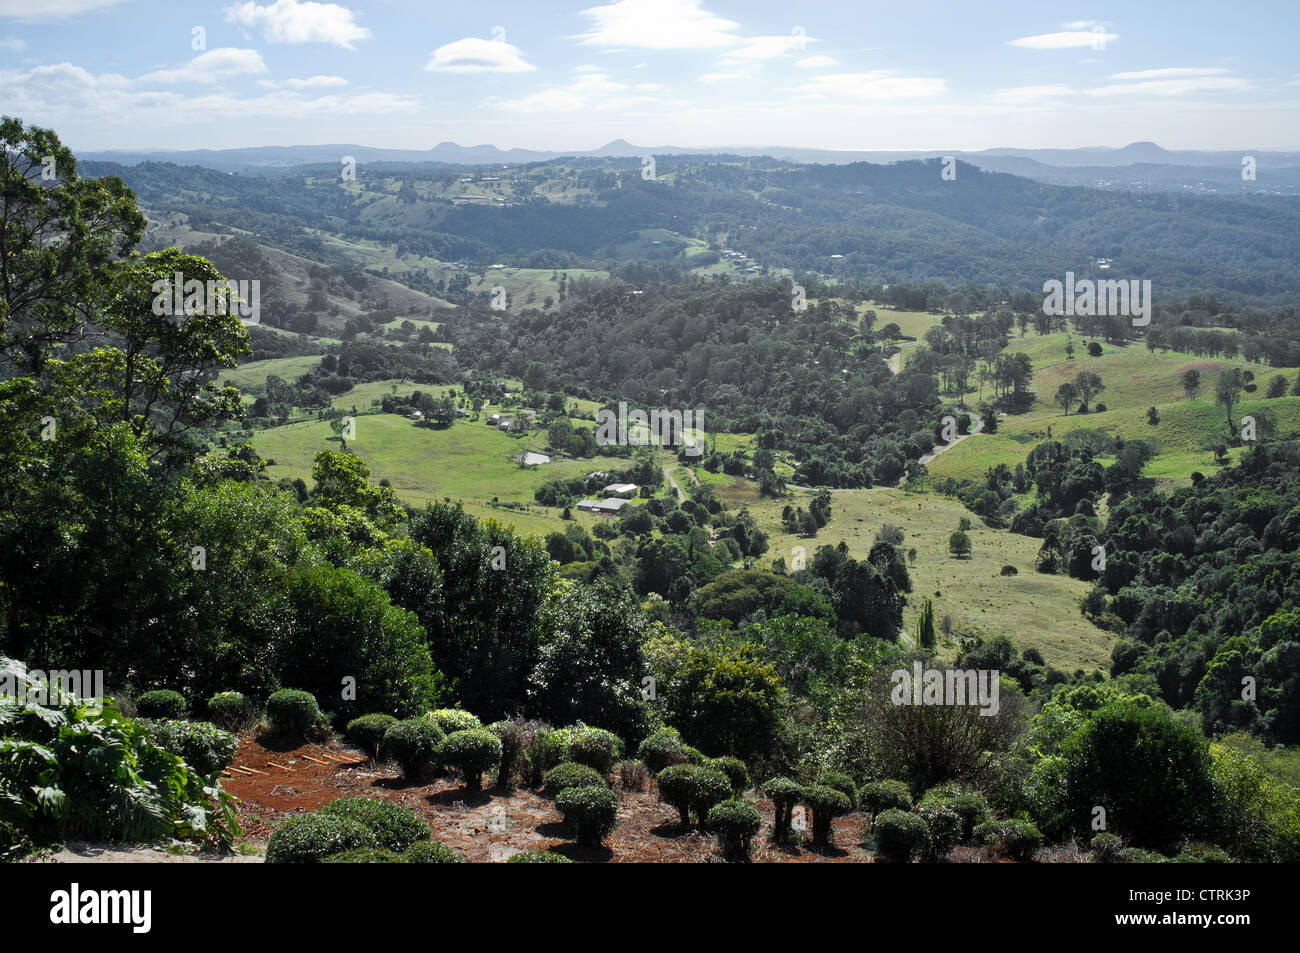 Montville Queensland - The view over the hinterland from the top of Montville in Queensland, Australia. - Stock Image